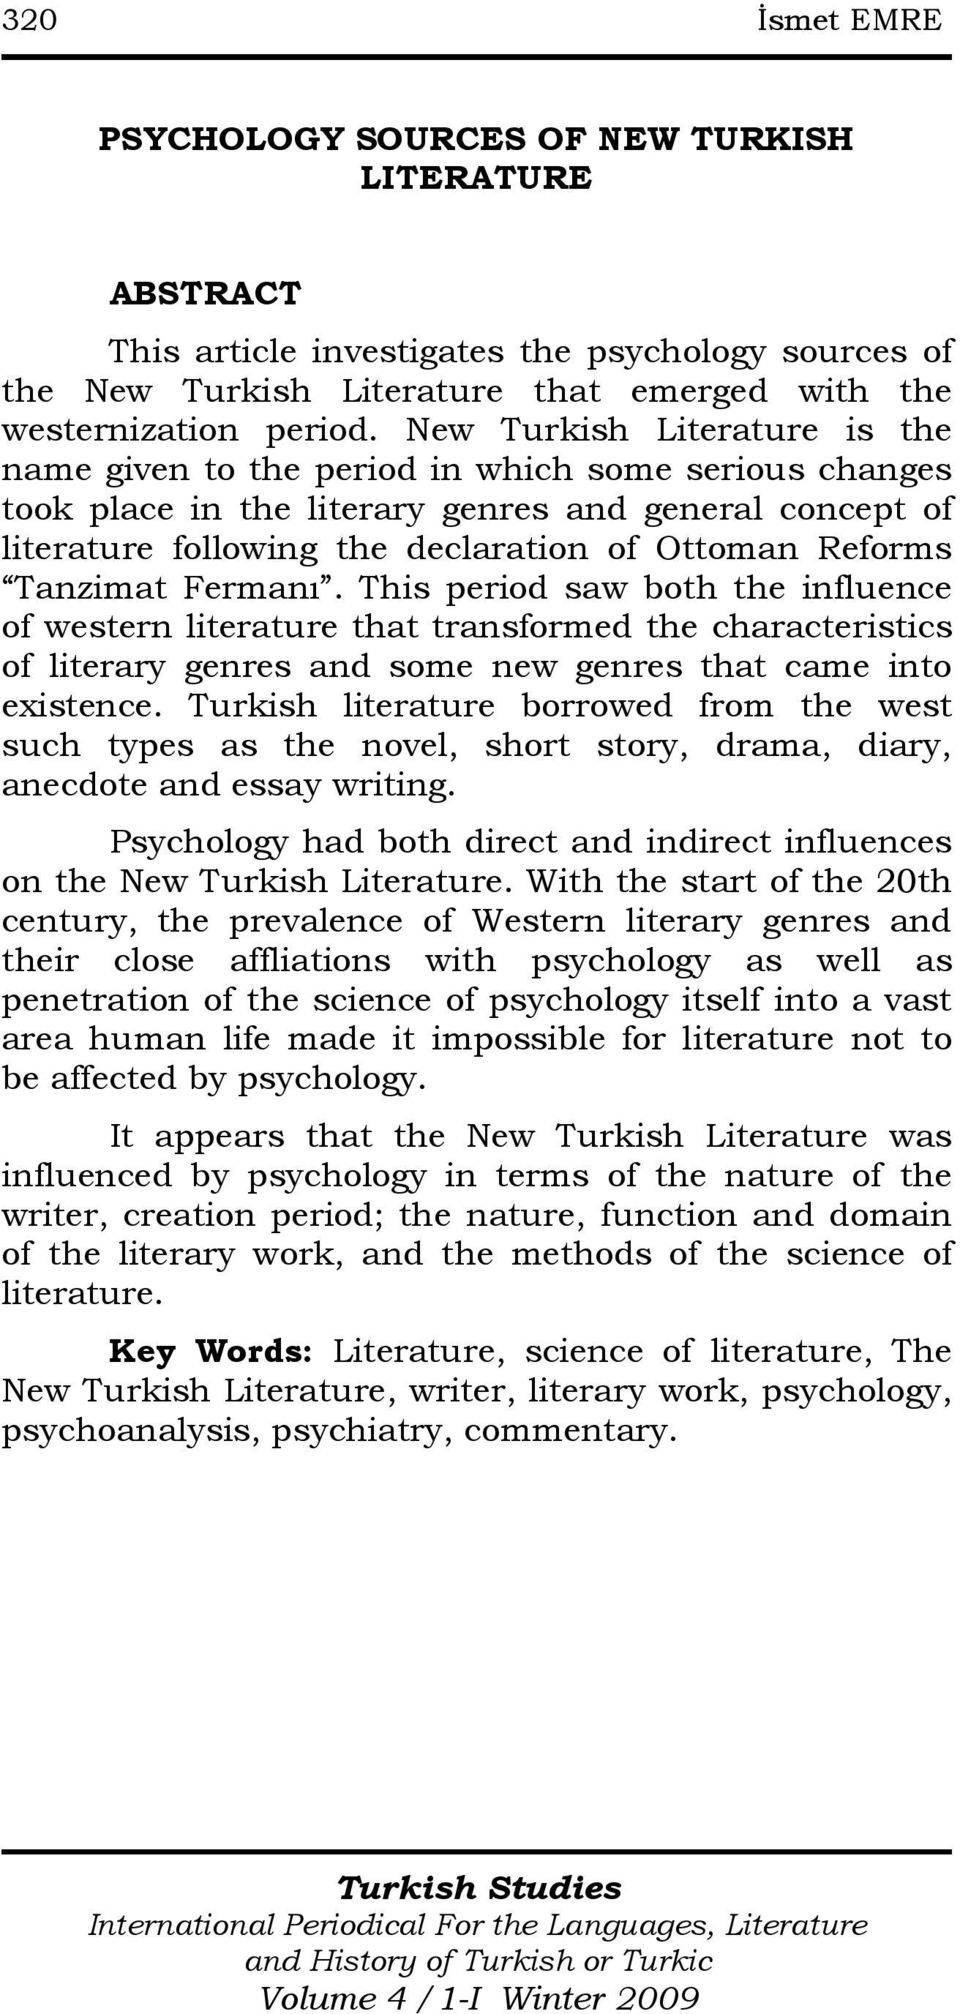 Tanzimat Fermanı. This period saw both the influence of western literature that transformed the characteristics of literary genres and some new genres that came into existence.